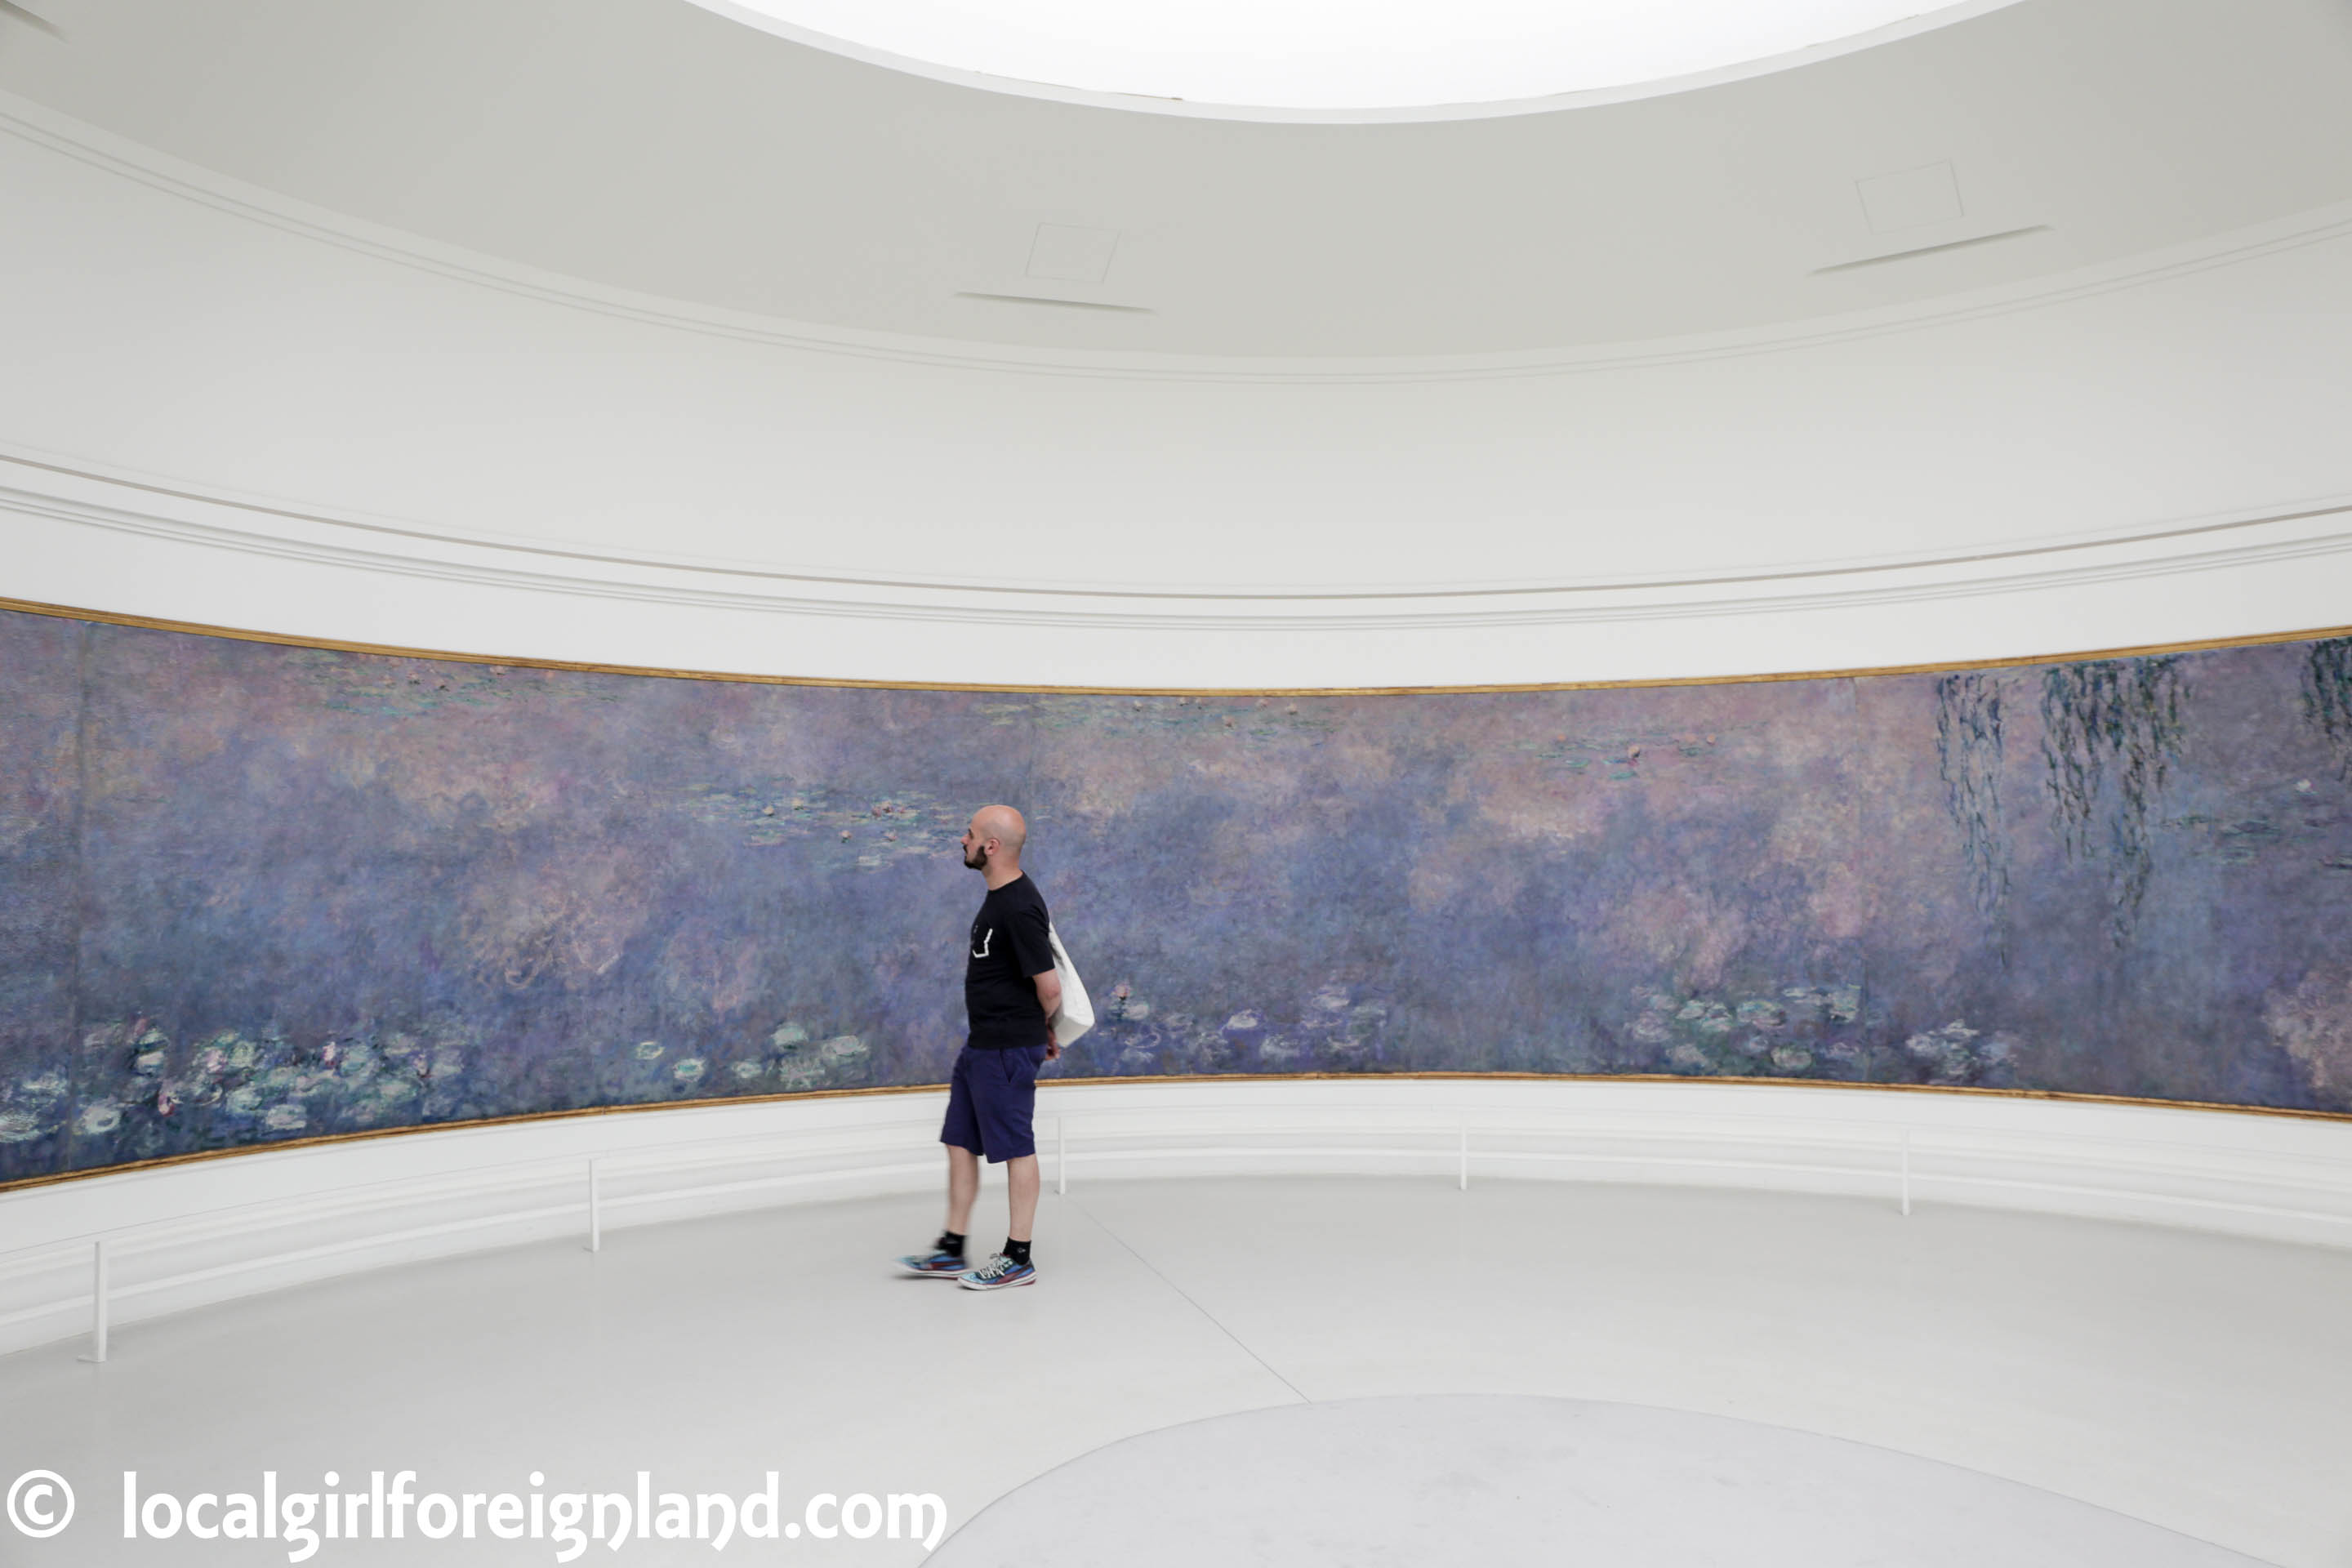 musee-de-l-orangerie-paris-claude-monet-reflection-6210